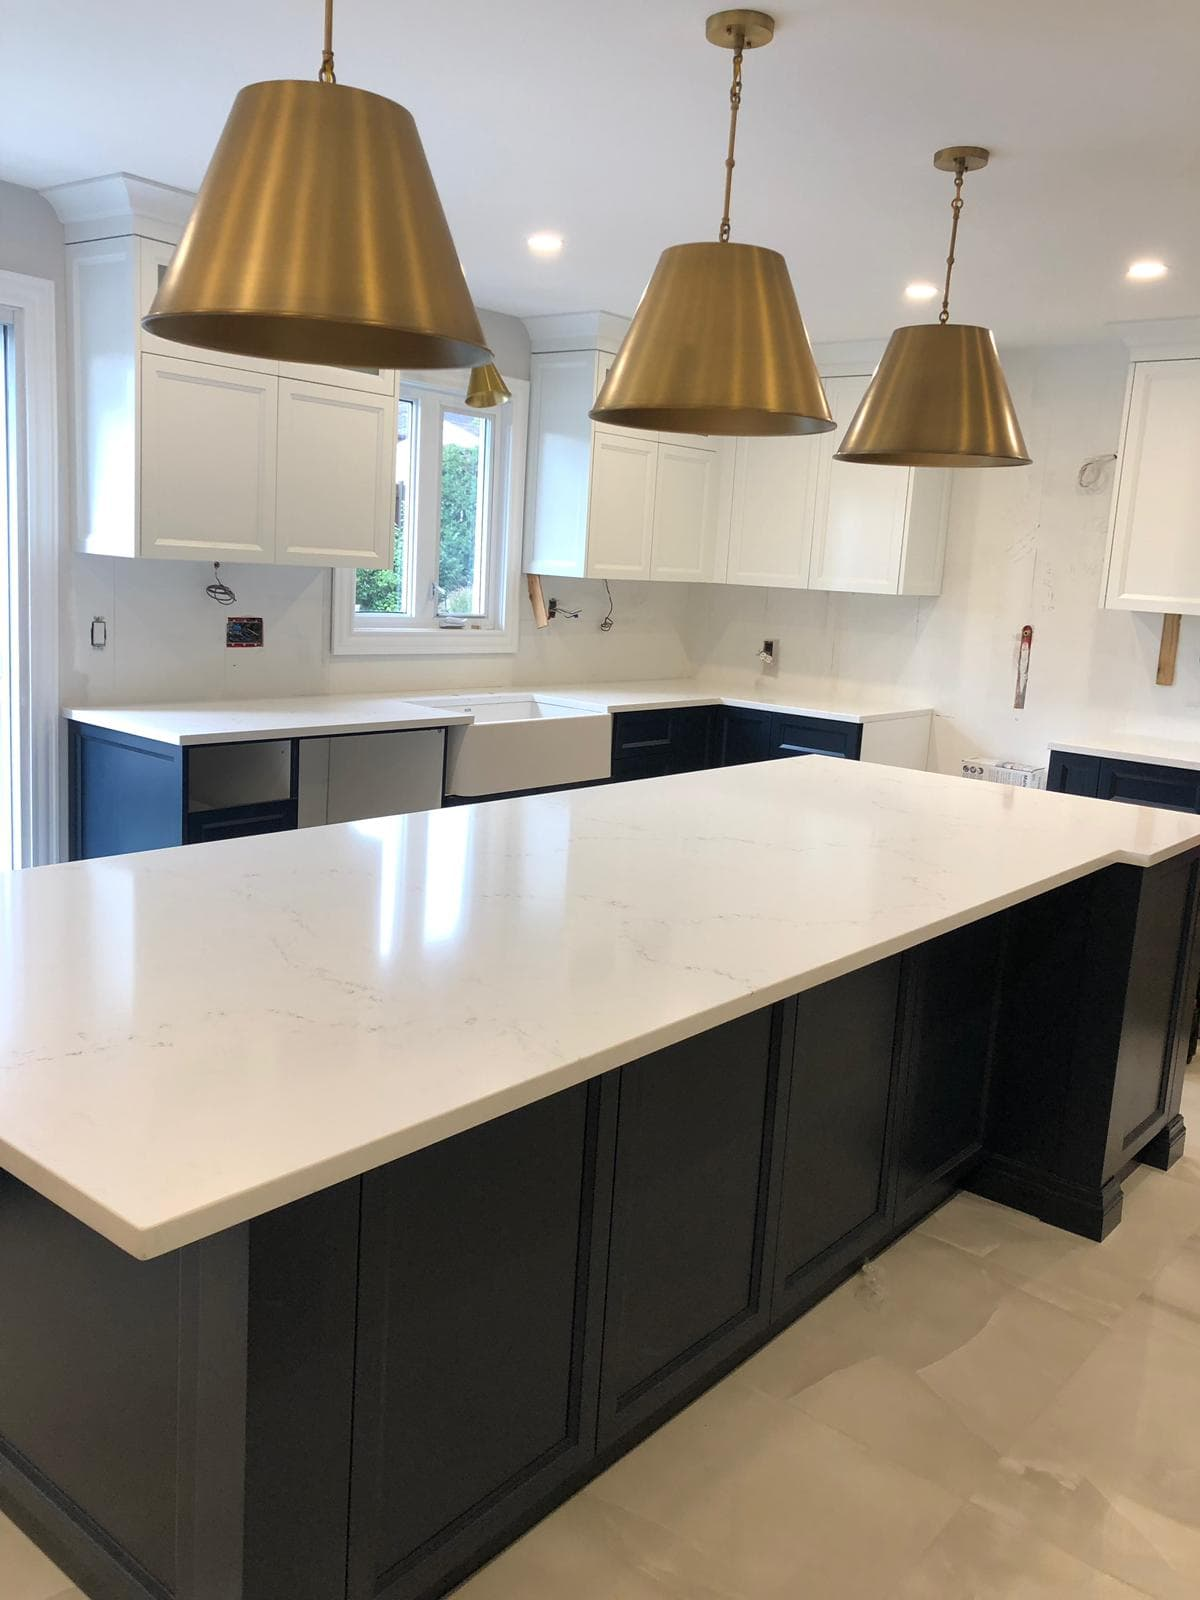 Kitchen Countertops- Granite4less